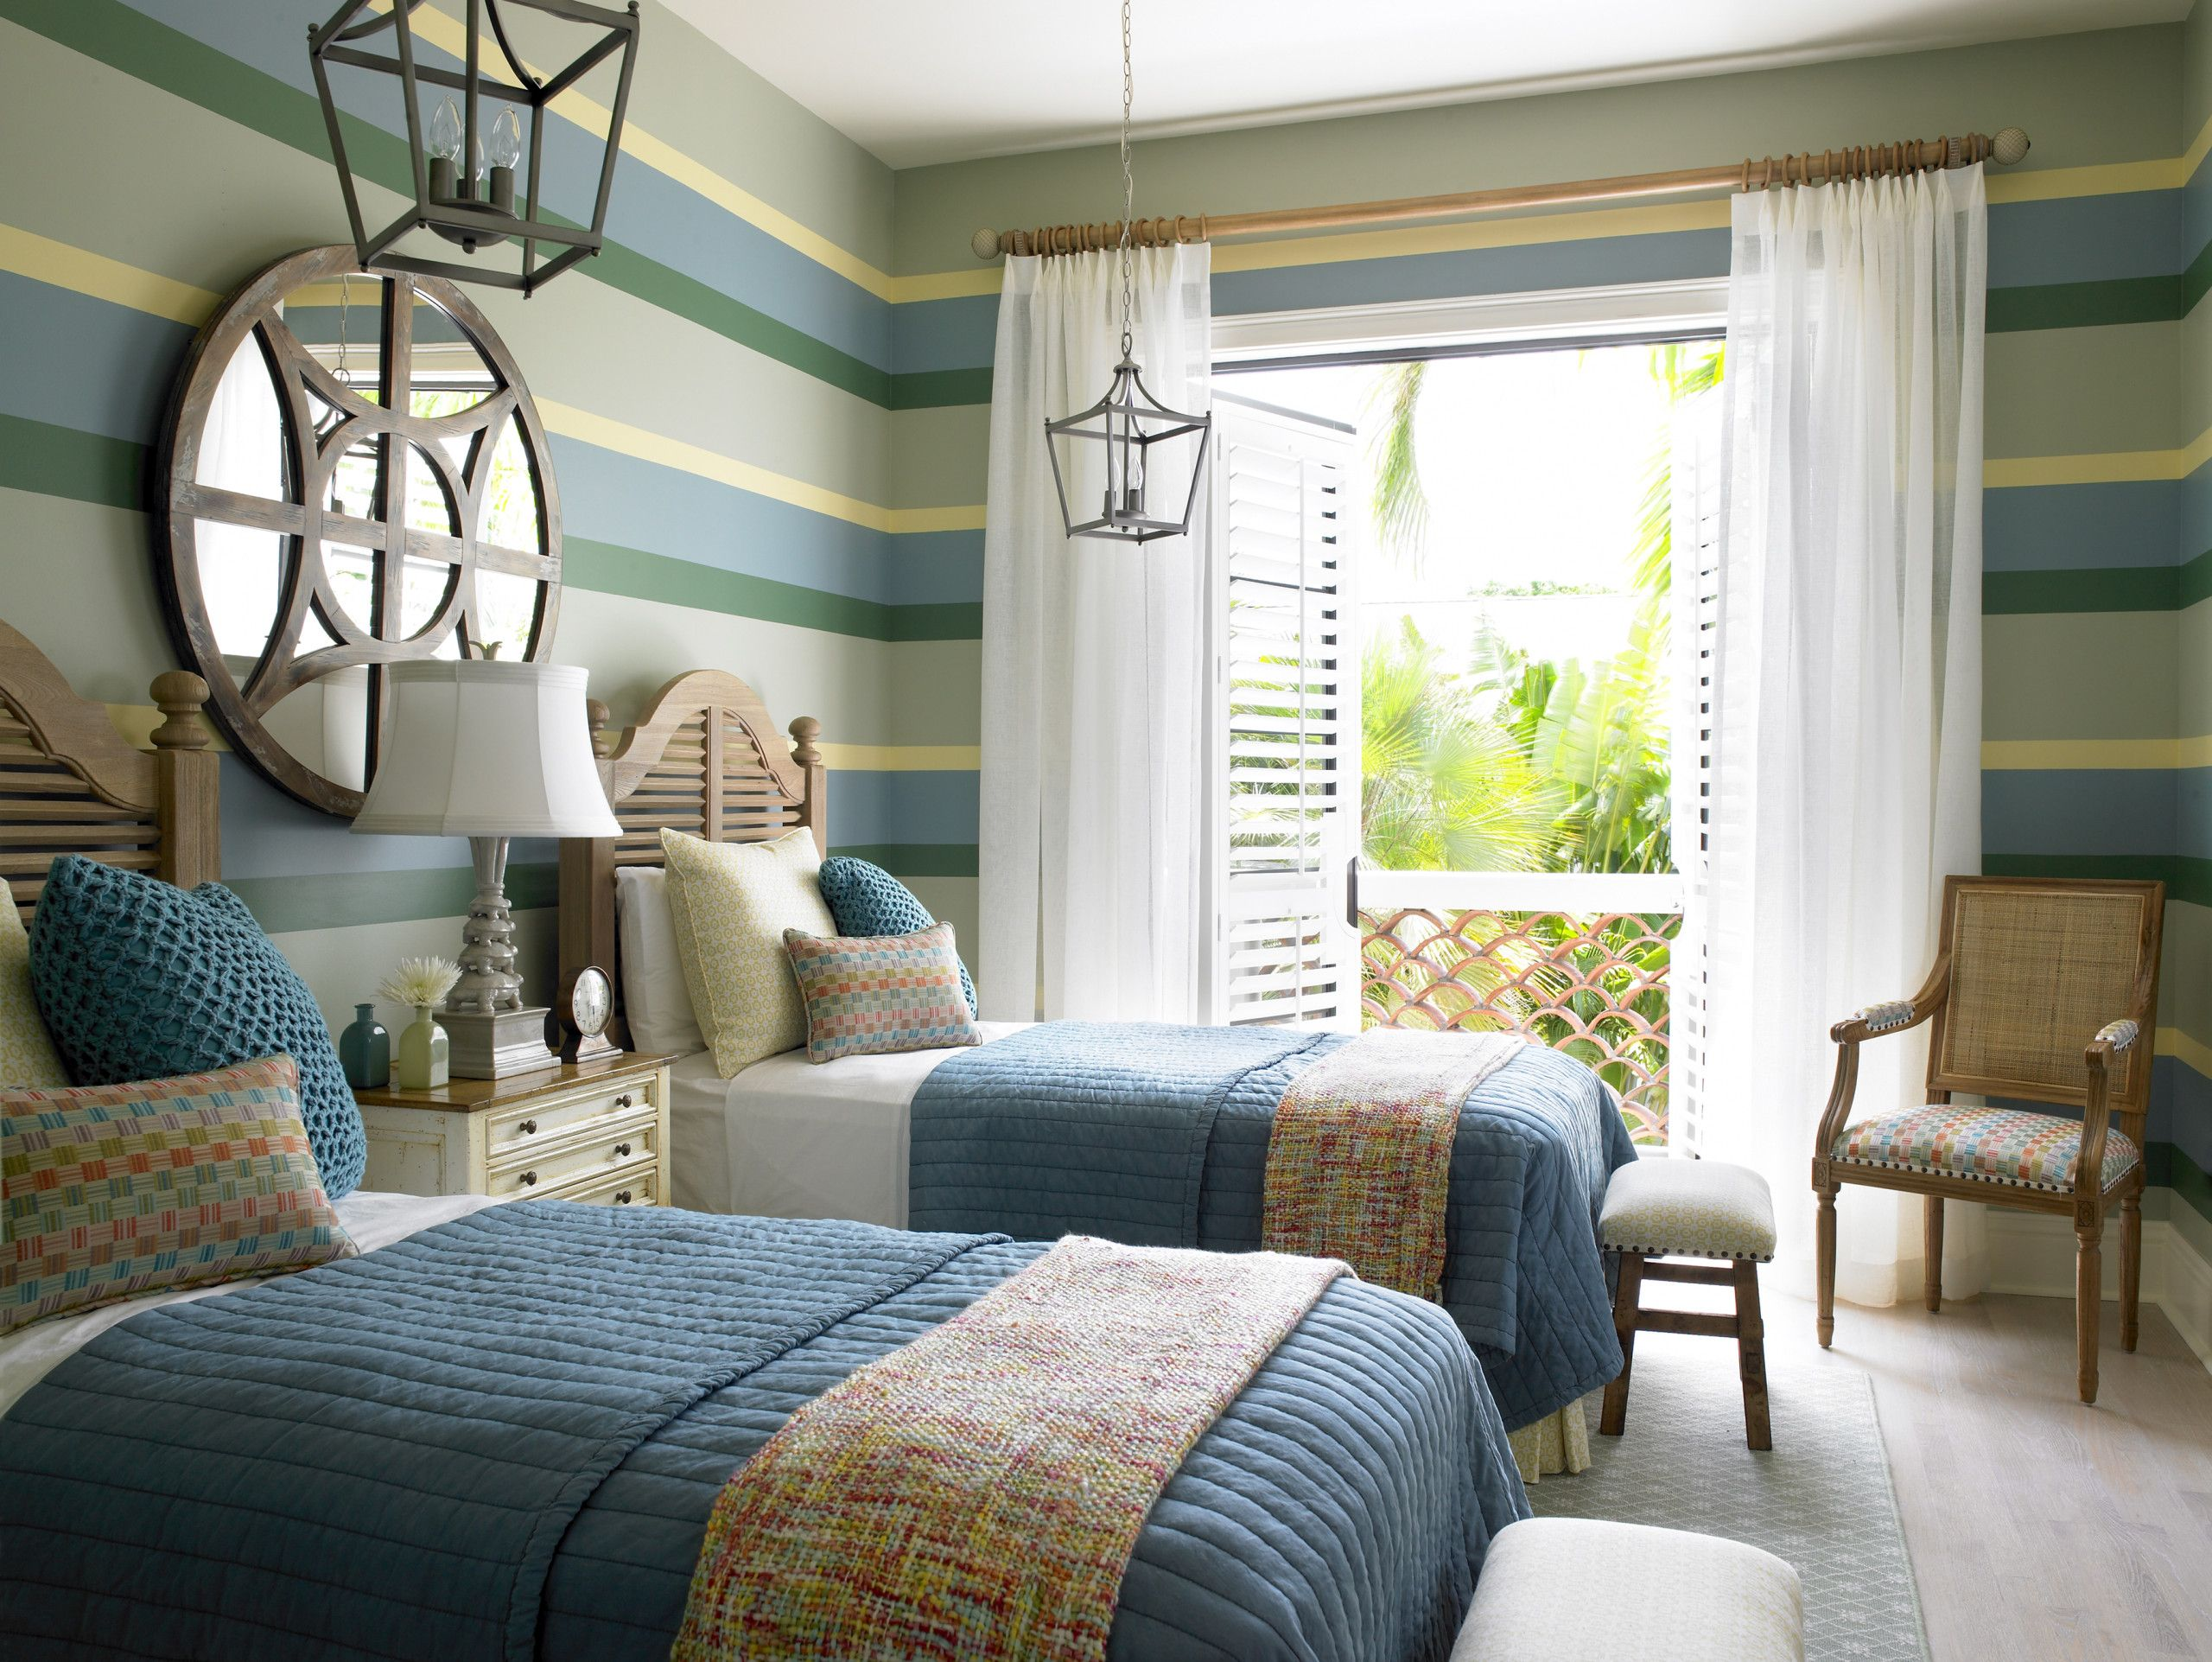 Beach cottage bedroom - Find This Pin And More On Cute Twin Bedrooms